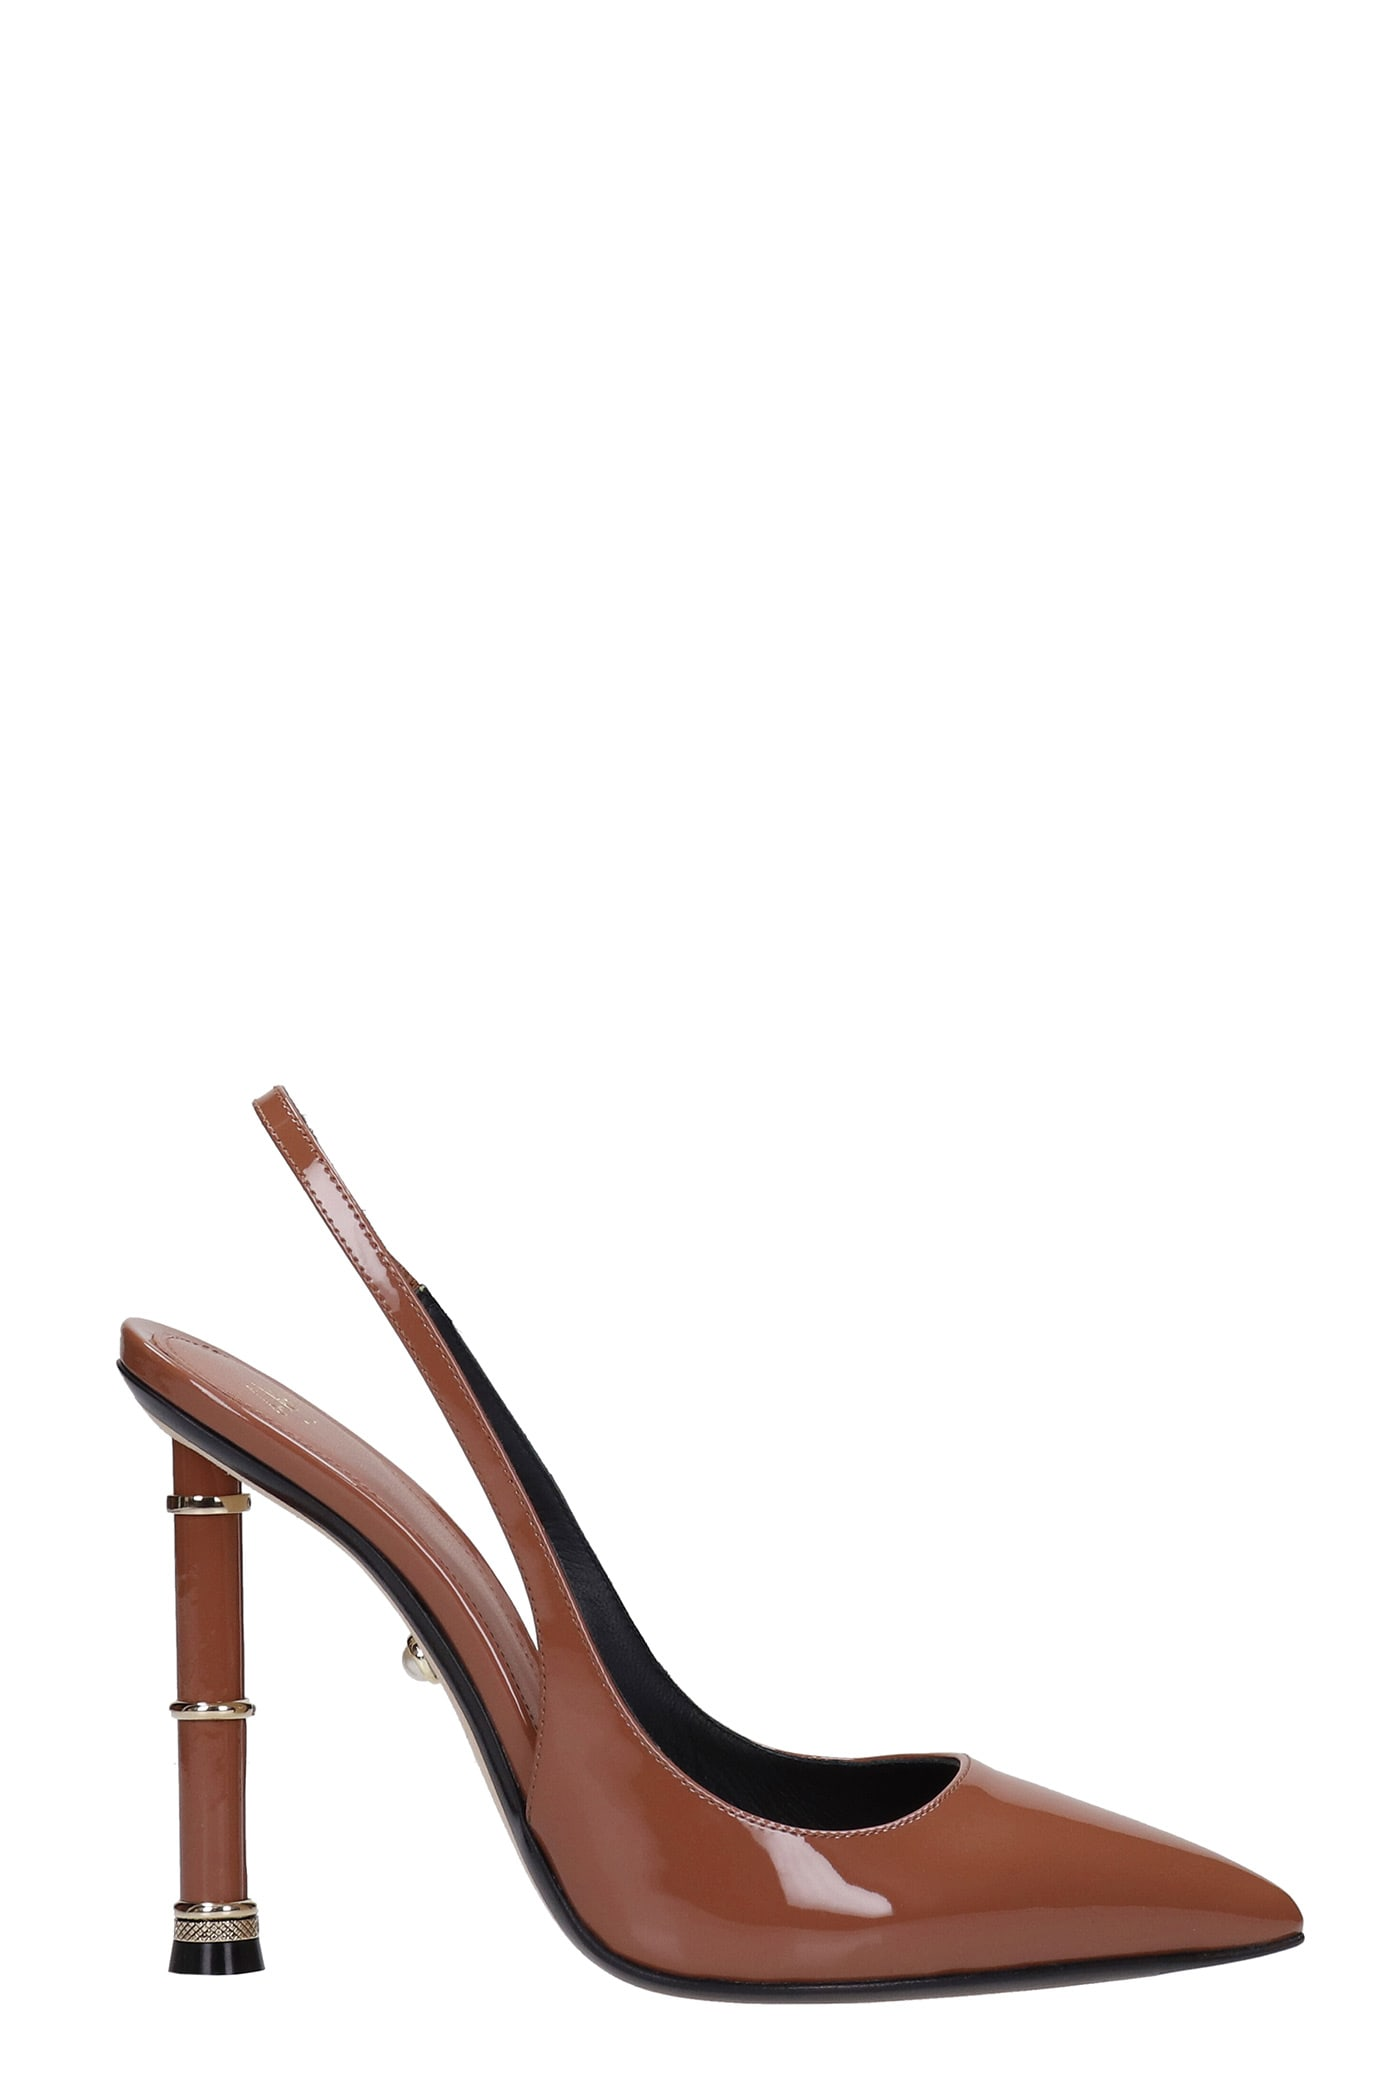 Valeria 110 Pumps In Brown Patent Leather